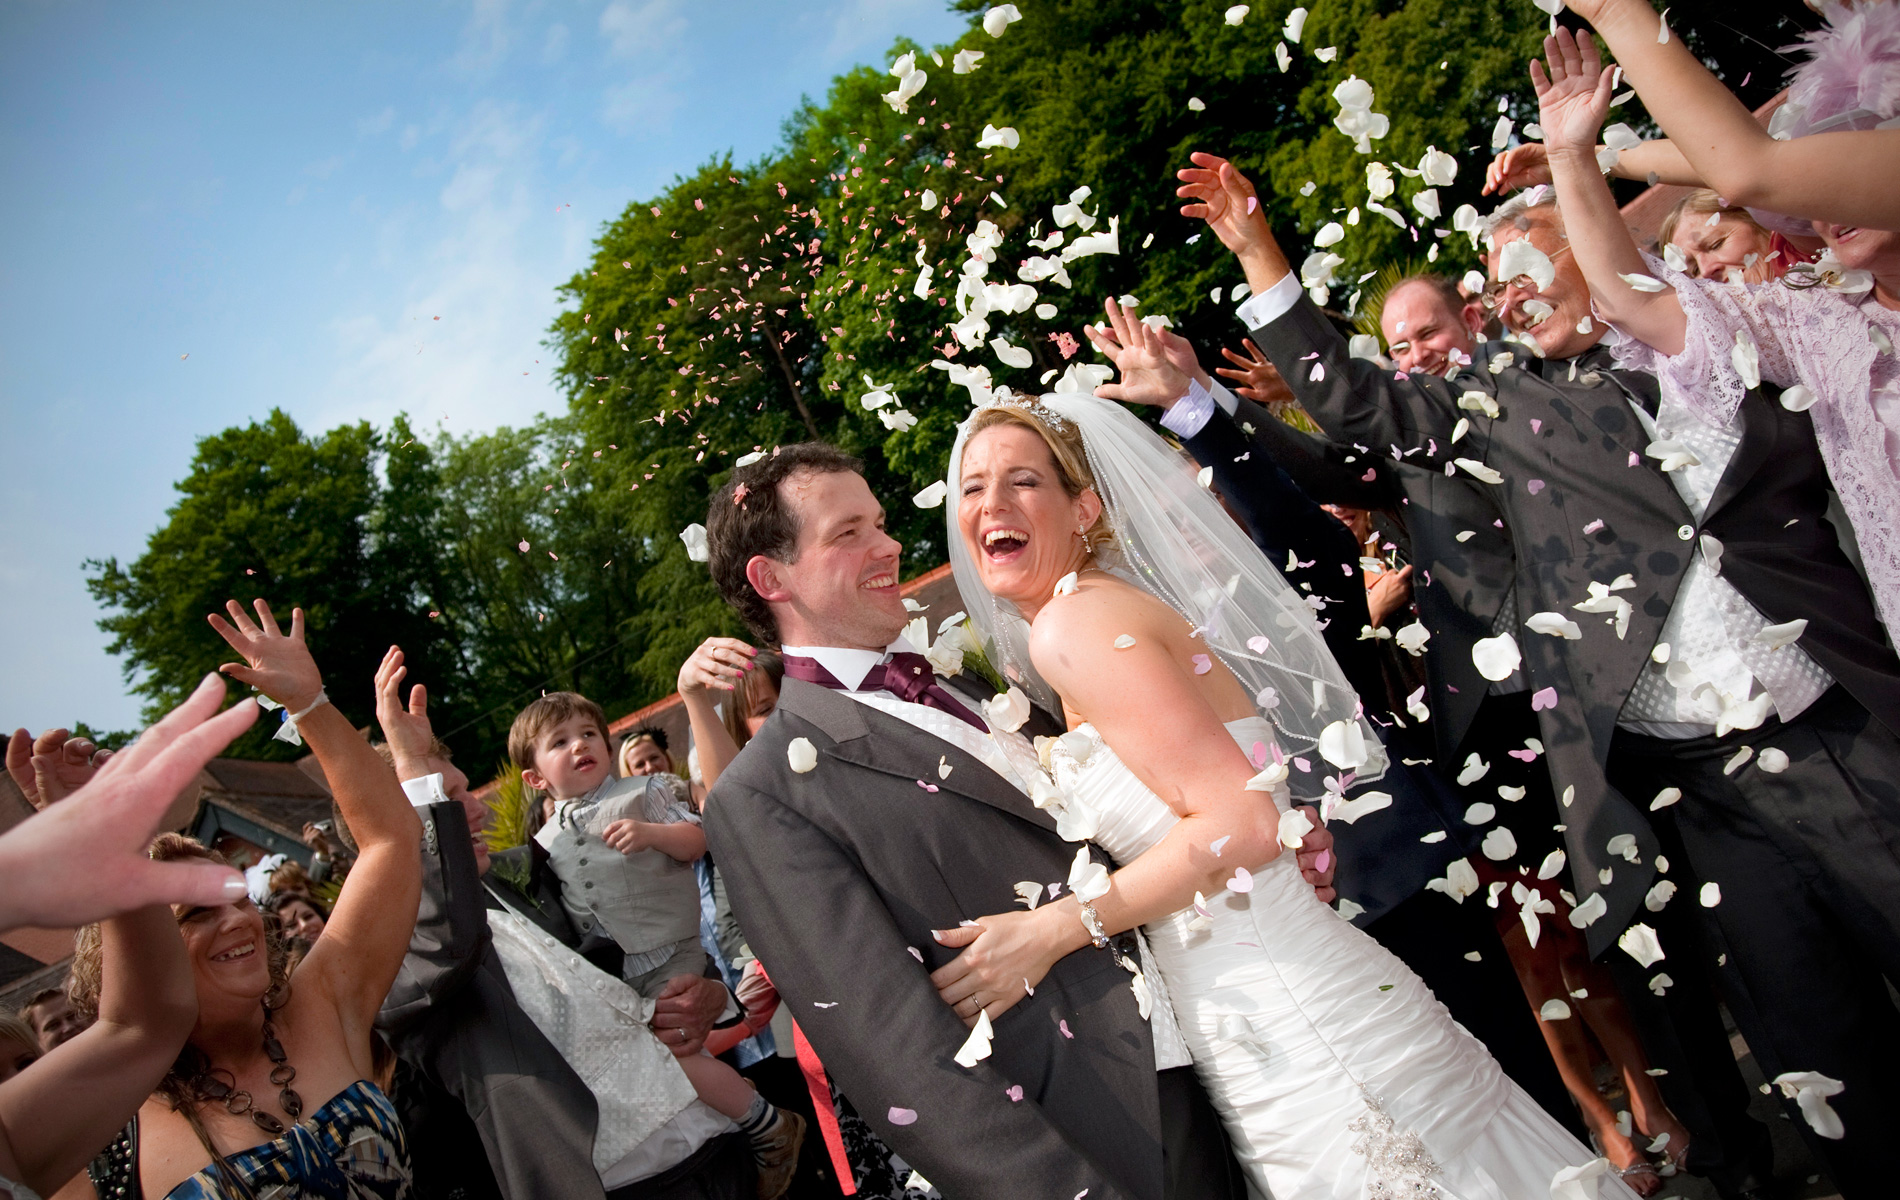 Coed-y-mwstwr-wedding-photographer-Confetti-wedding-laughing-bride